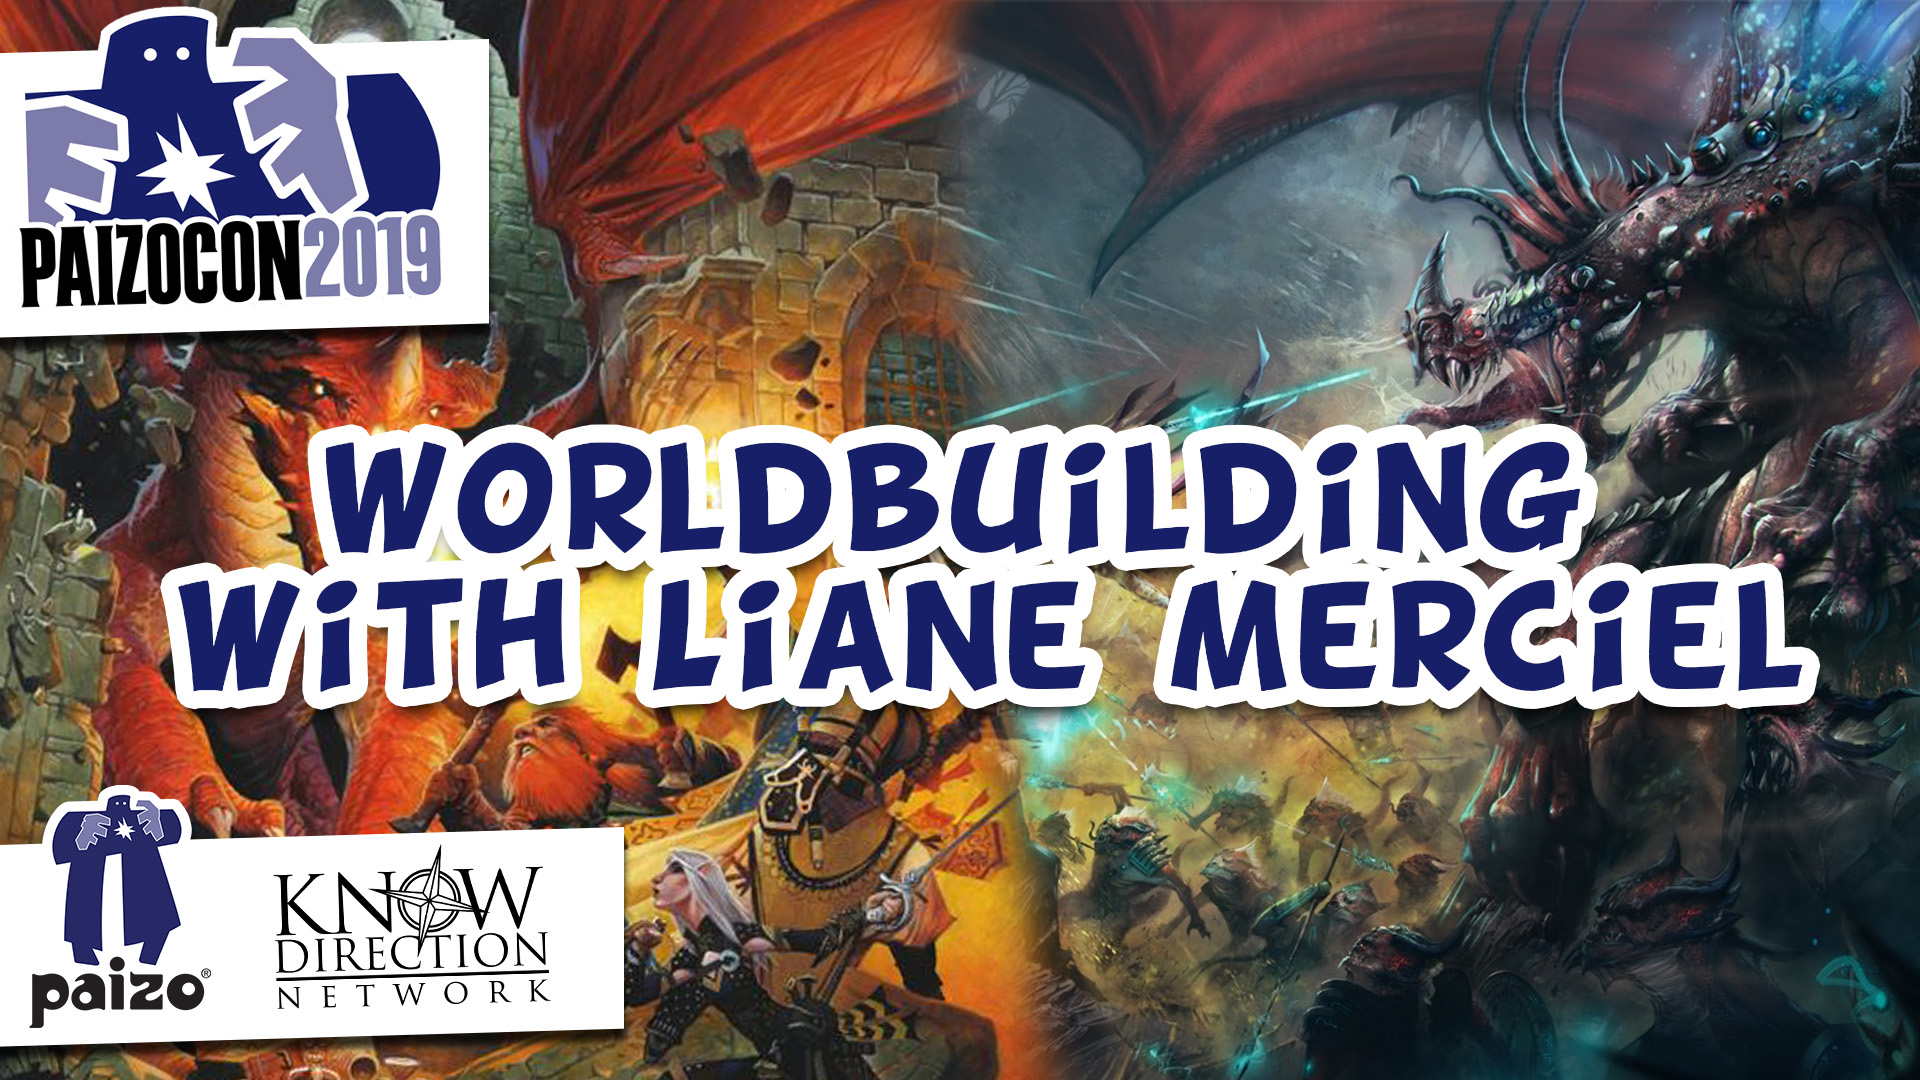 """Worldbuilding with Liane Merciel"